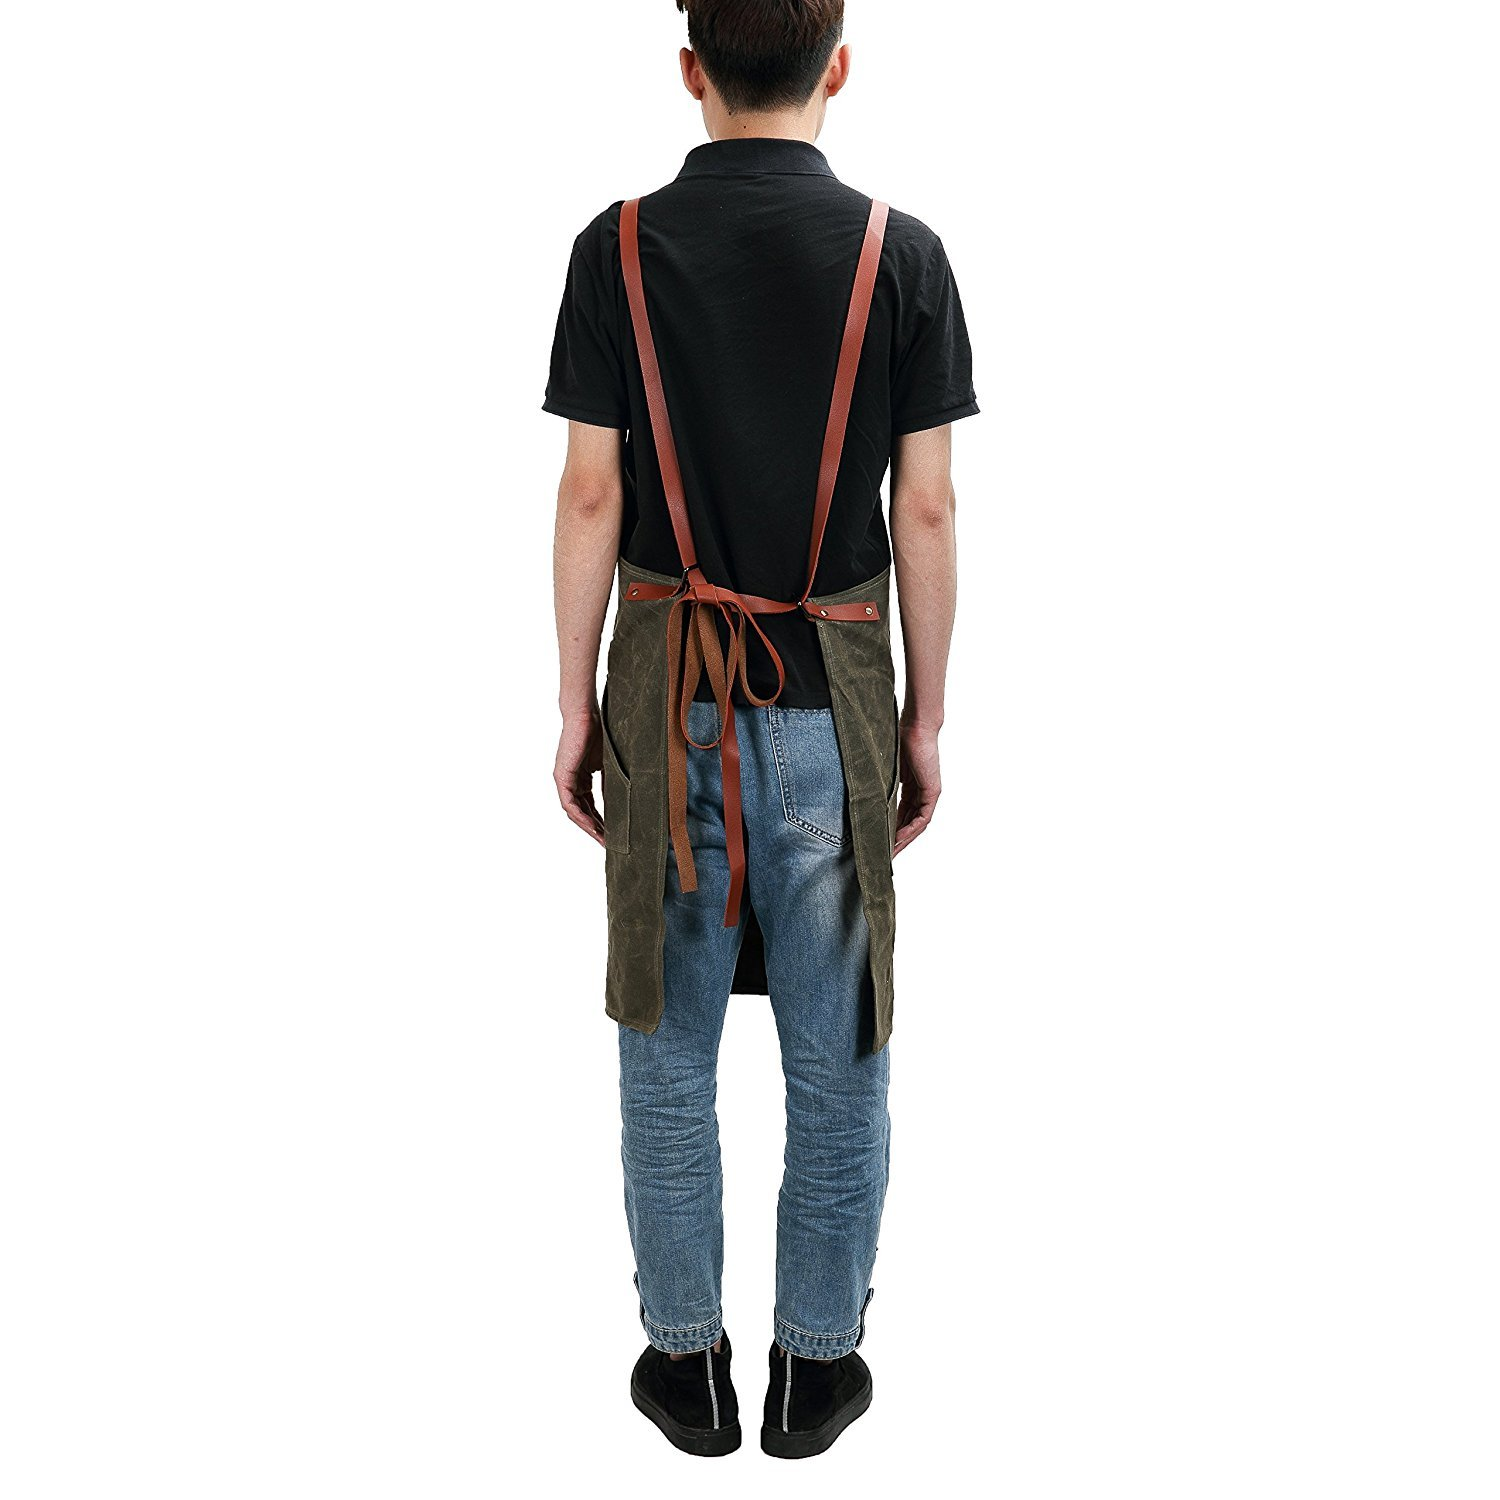 Waxed Canvas Carpenters Apron Army Green QEES Mens Tool Apron Joiners Apron WQ05 Heavy Duty Waterproof Workshop Apron Bib